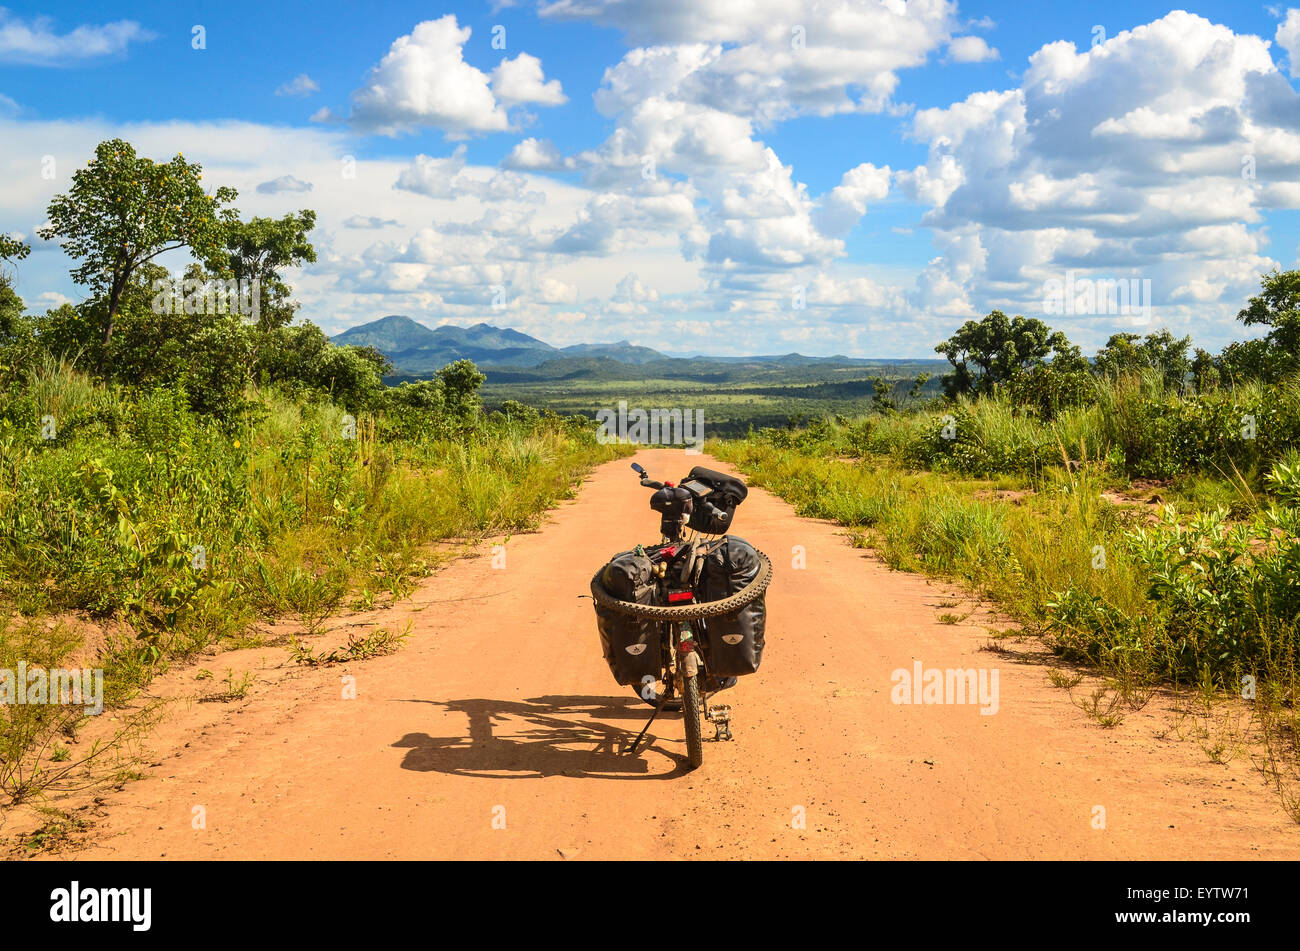 Adventure and bicycle touring on the dirt roads of Angola - Stock Image